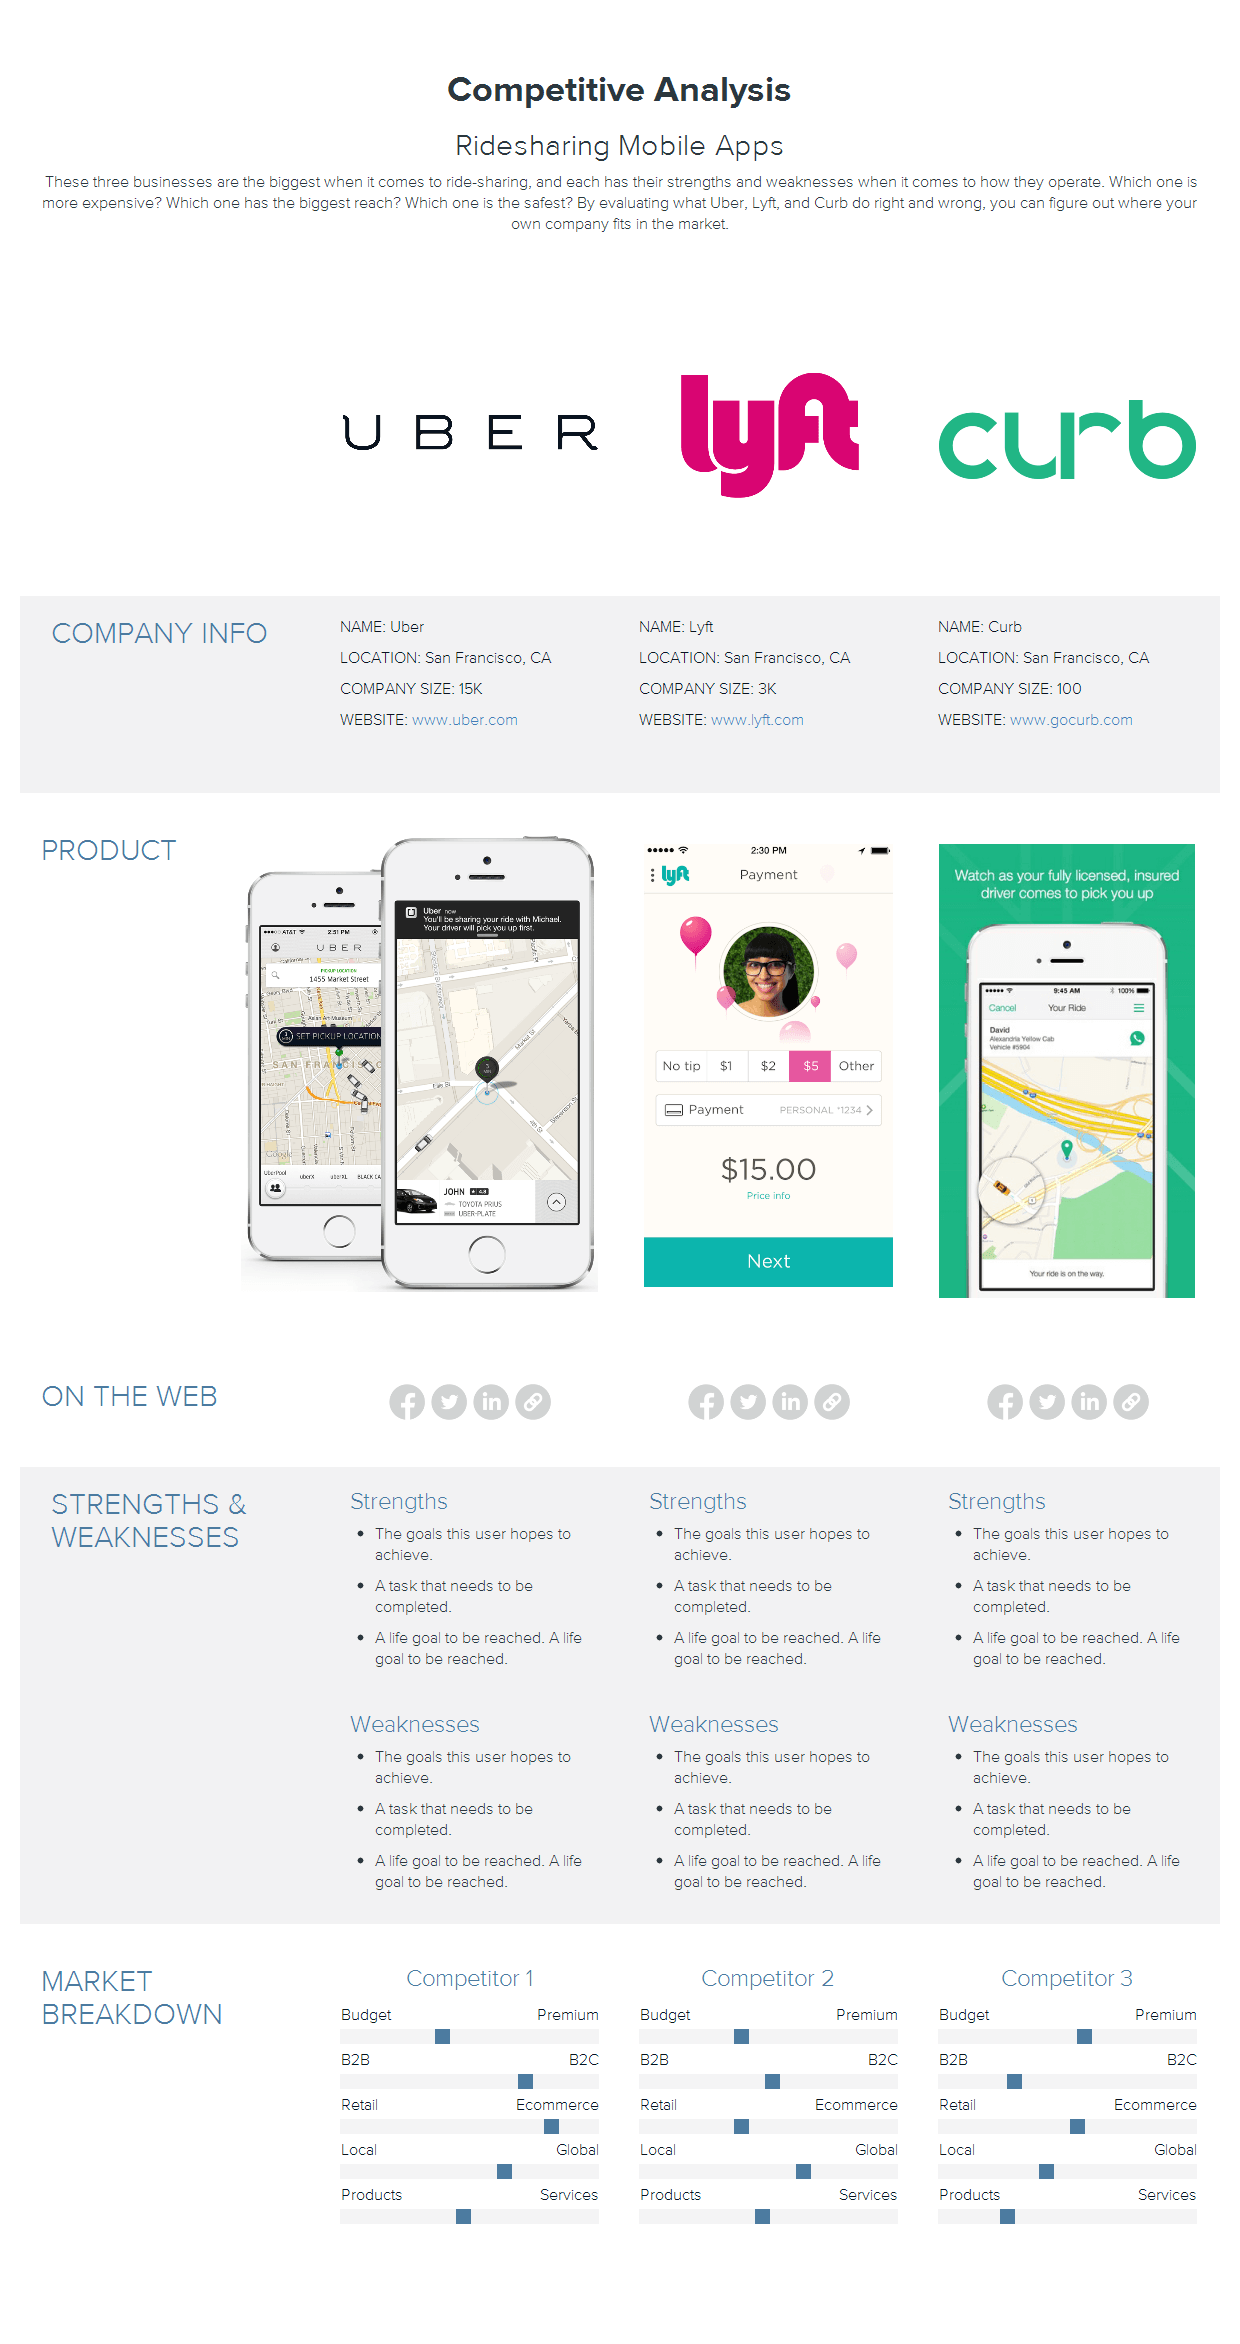 Ridesharing Apps Competitive Analysis Sample By Xtensio